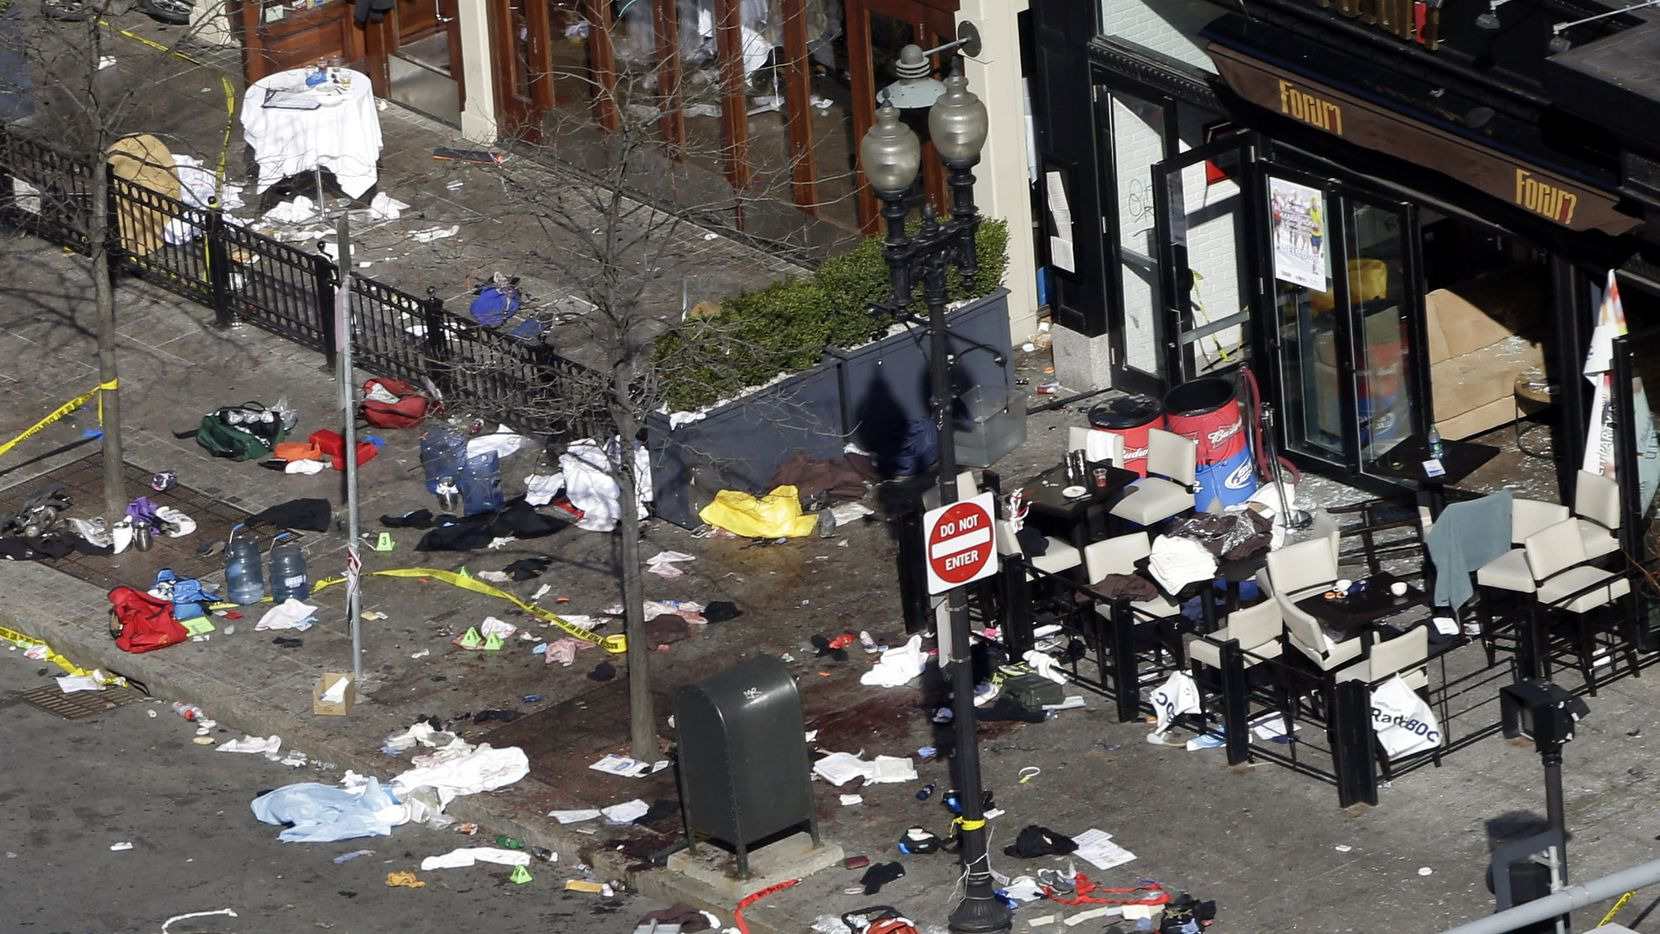 Debris litters the sidewalk at the scene of one of the explosions near the finish line of the Boston Marathon.